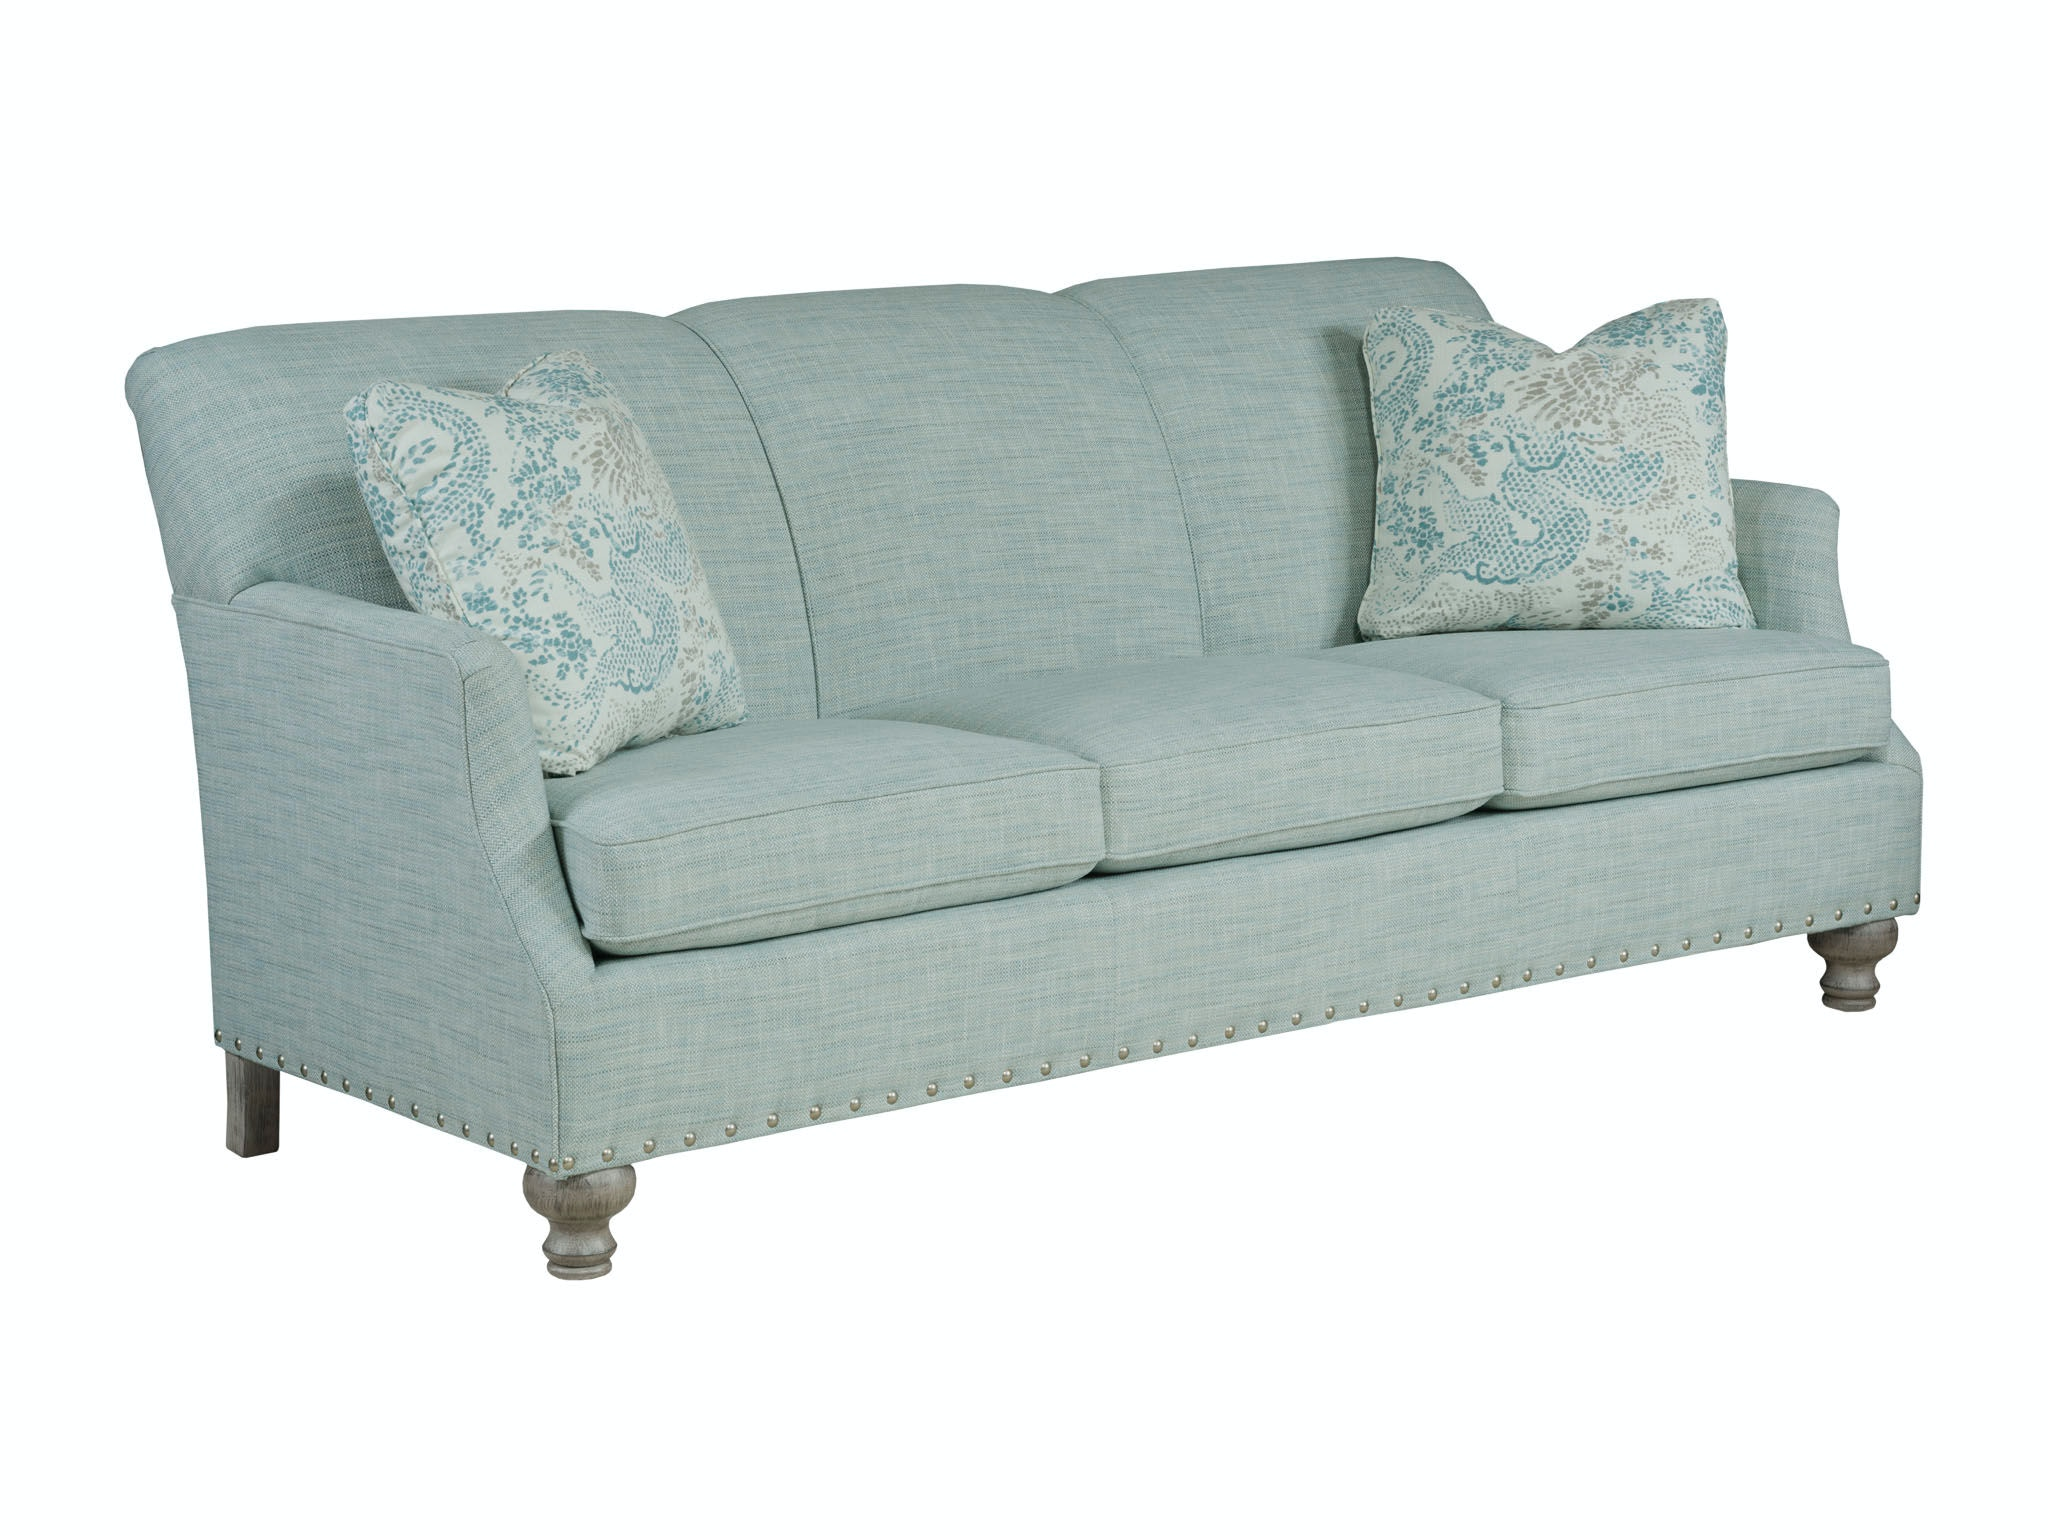 Kincaid Furniture Camden Sofa 313 86